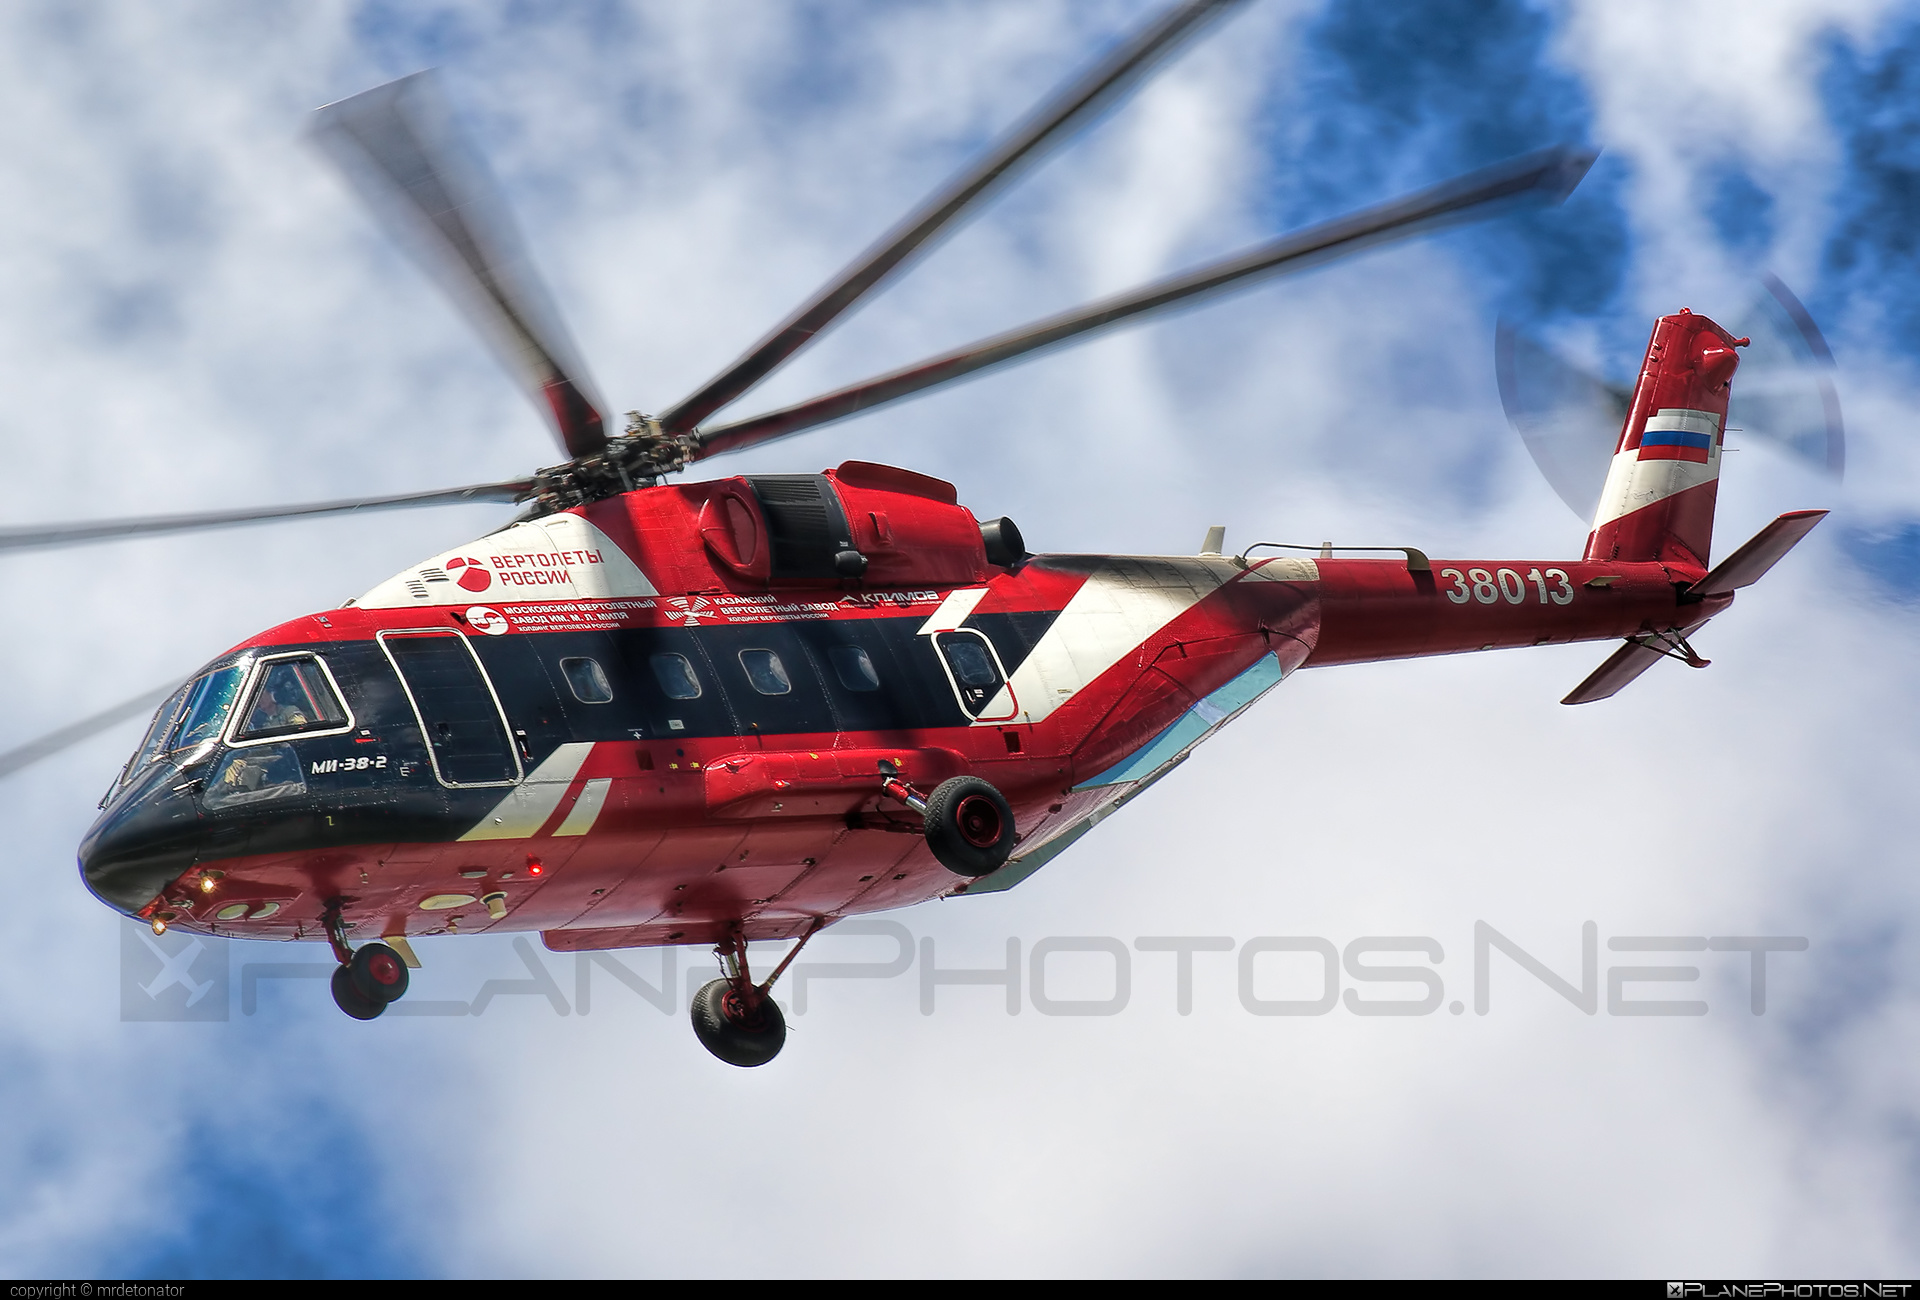 Mil Mi-38-2 - 38013 operated by Russian Helicopters #maks2017 #mi38 #mi382 #mil #milhelicopters #milmi38 #milmi382